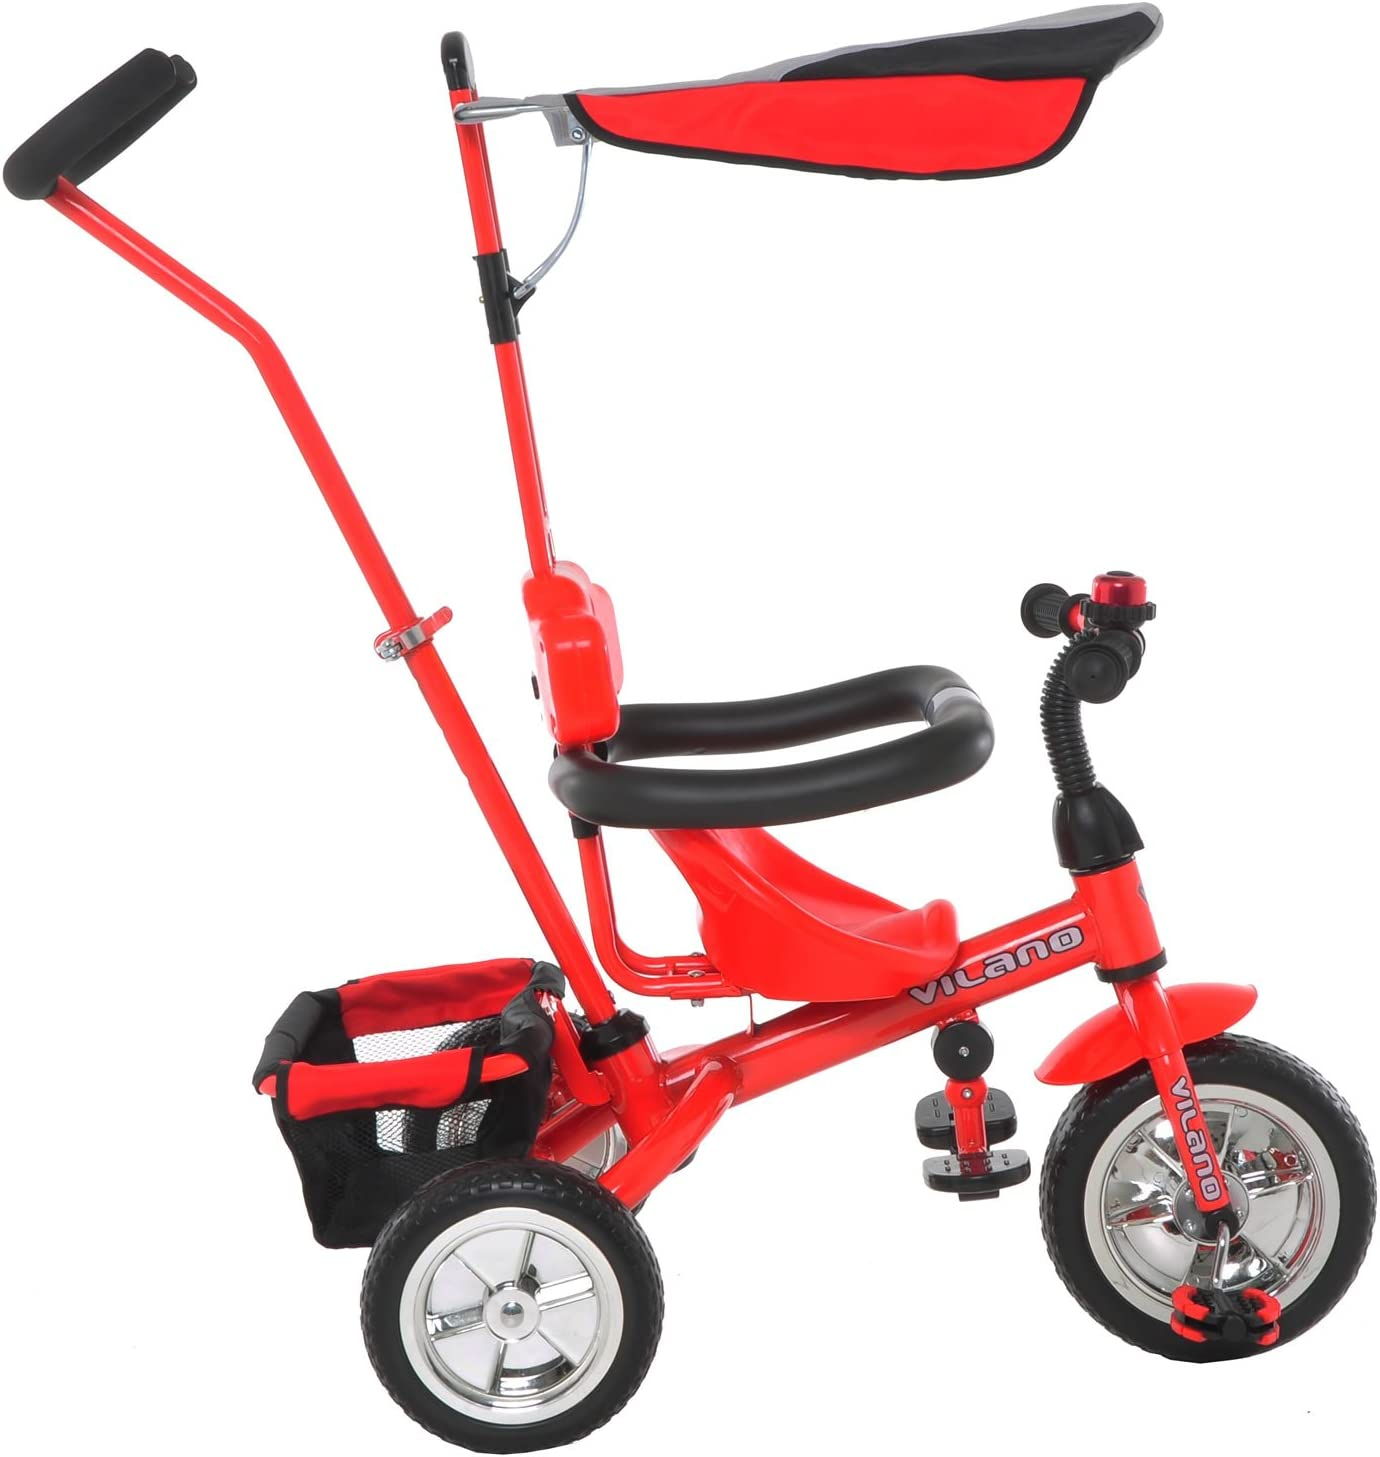 Vilano 3 in 1 Tricycle /& Learn to Ride Trike